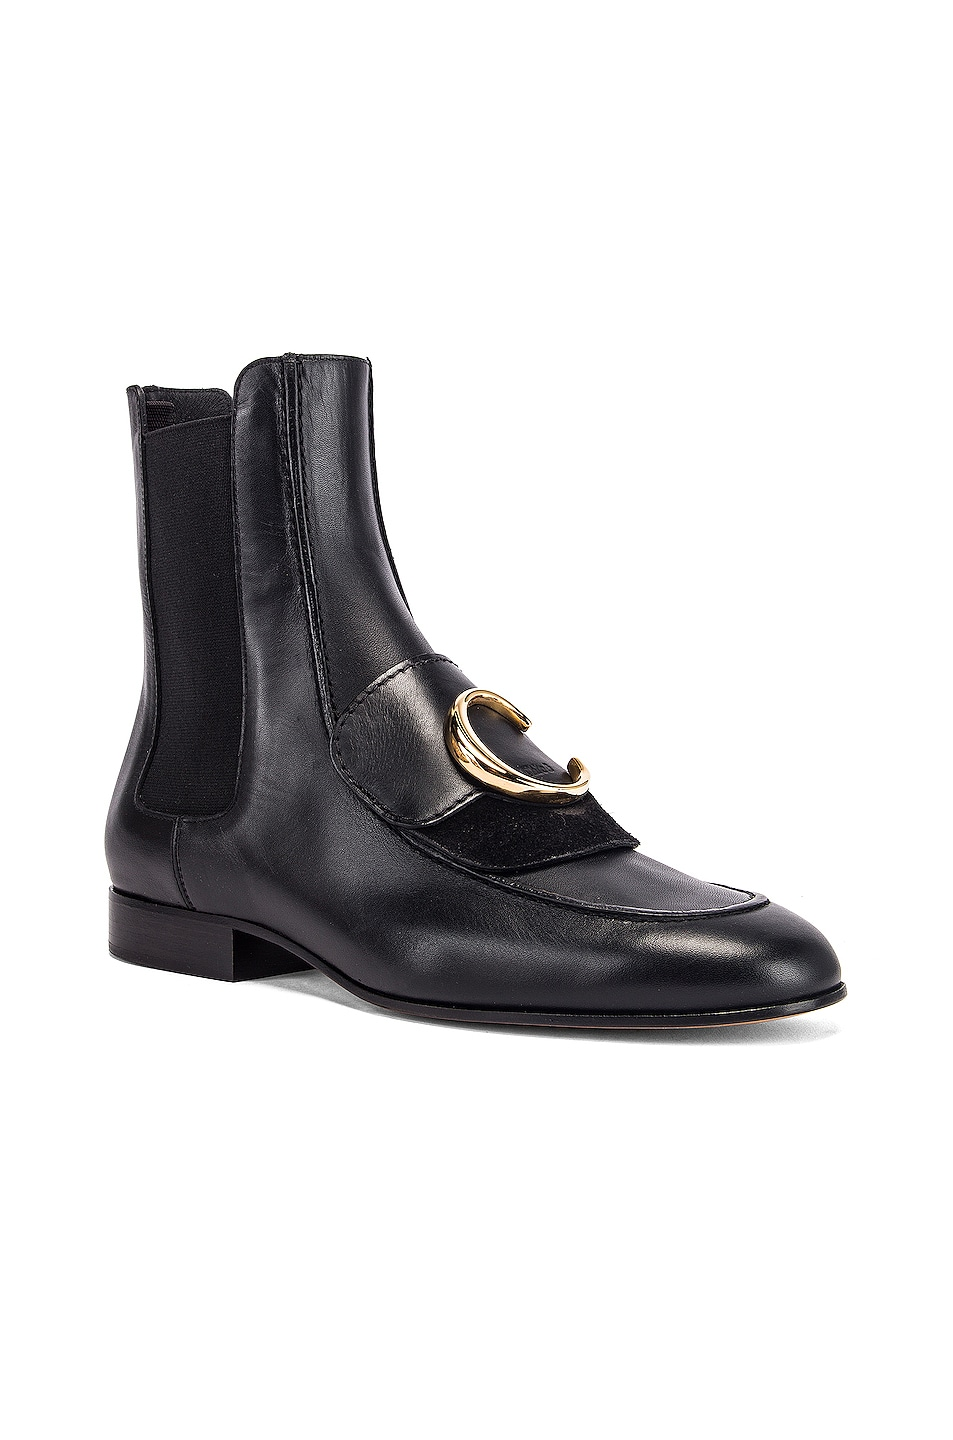 Image 3 of Chloe C Ankle Boots in Black